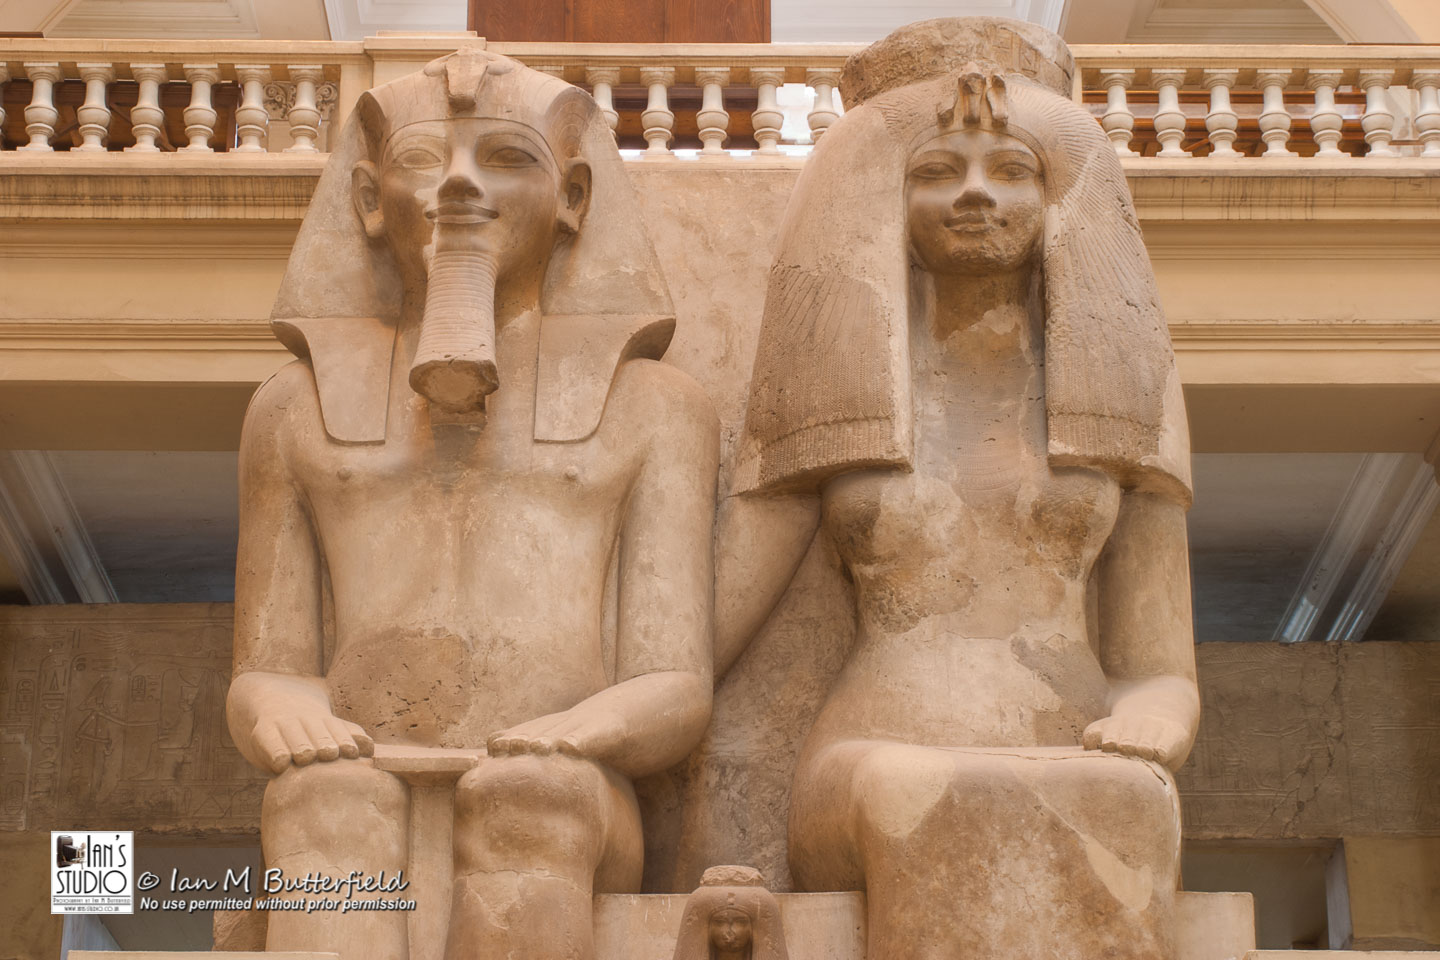 SALE 17 Sep 2018: Amenhotep III and Queen Tiye Statue at the Cairo Museum. – FIRST Sale